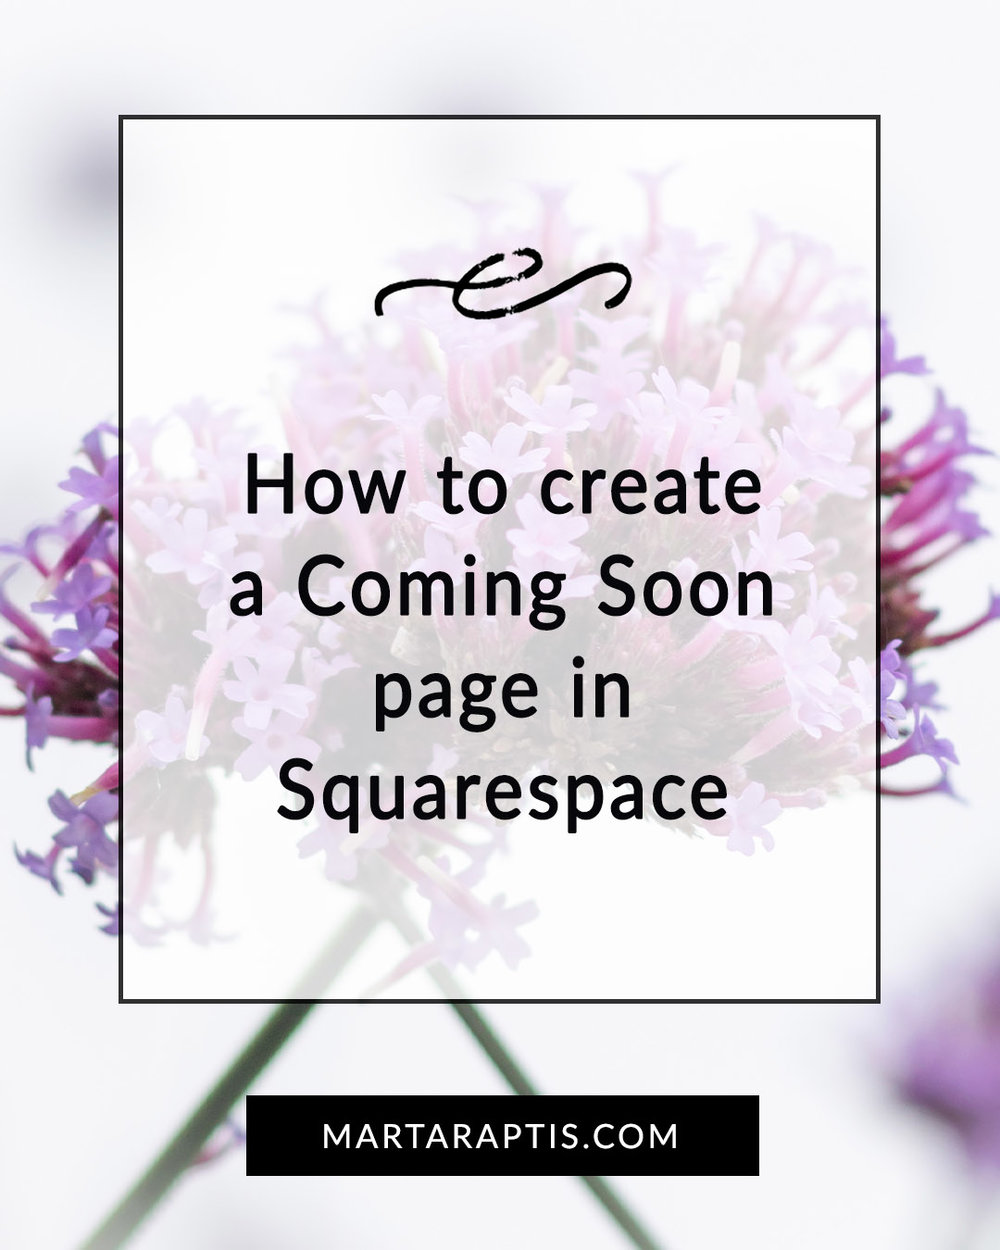 How to create a Coming Soon page in Squarespace.jpg